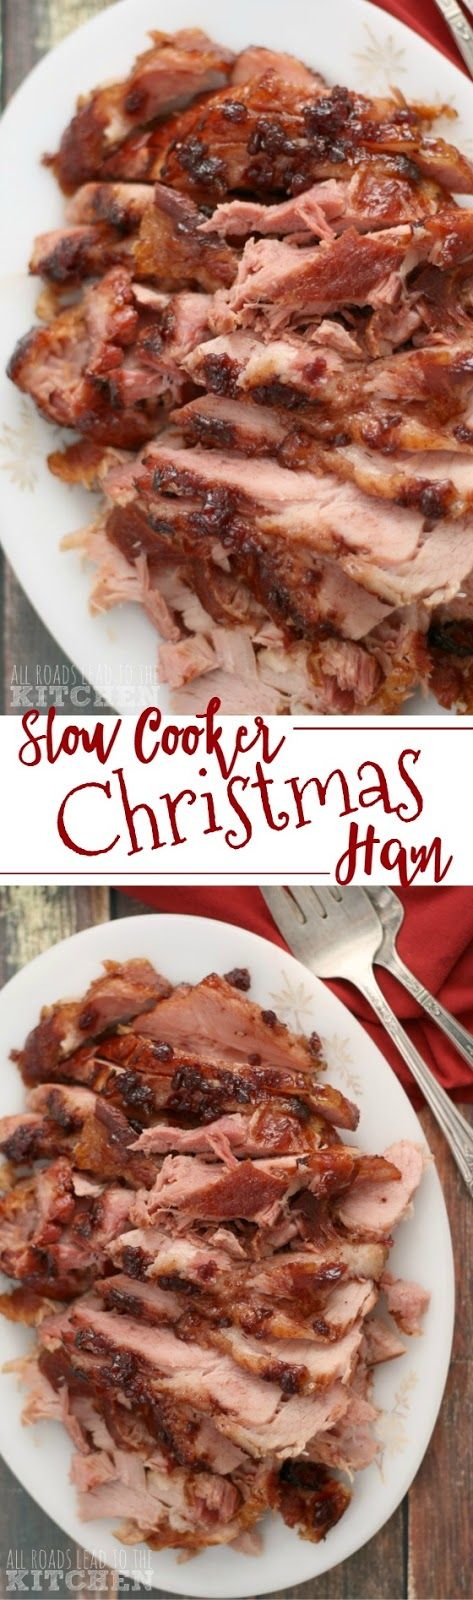 792 best food bloggers rock images on pinterest cooking recipes slow cooker christmas ham forumfinder Image collections